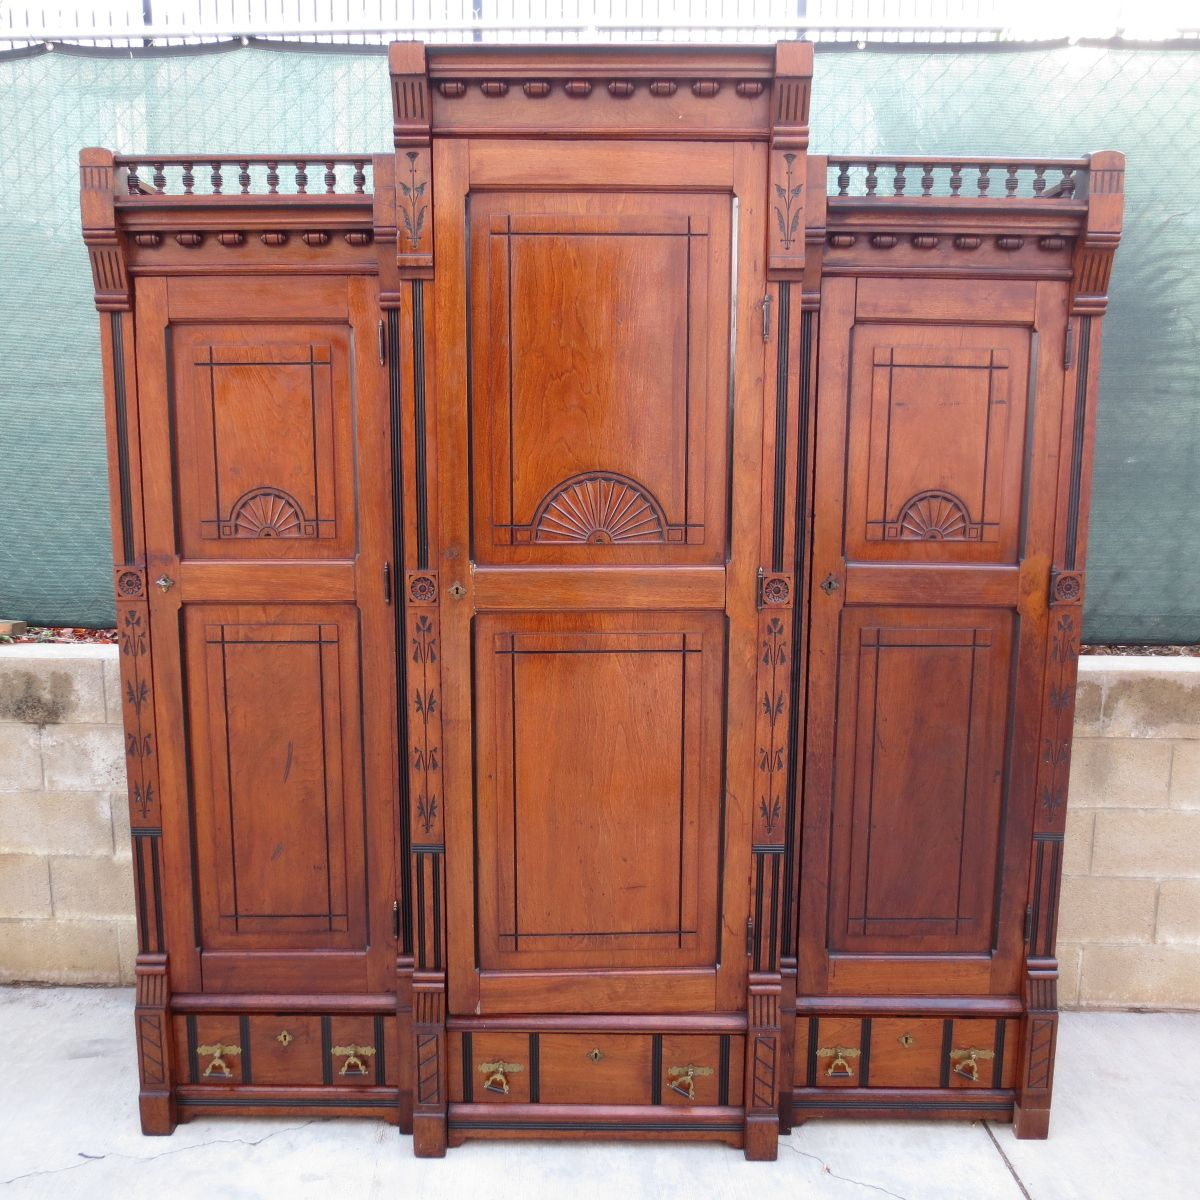 Antique Armoire Antique Cabinet Victorian Antique Furniture Eastlake  Furniture - Antique Armoire Antique Cabinet Victorian Antique Furniture Eastlake